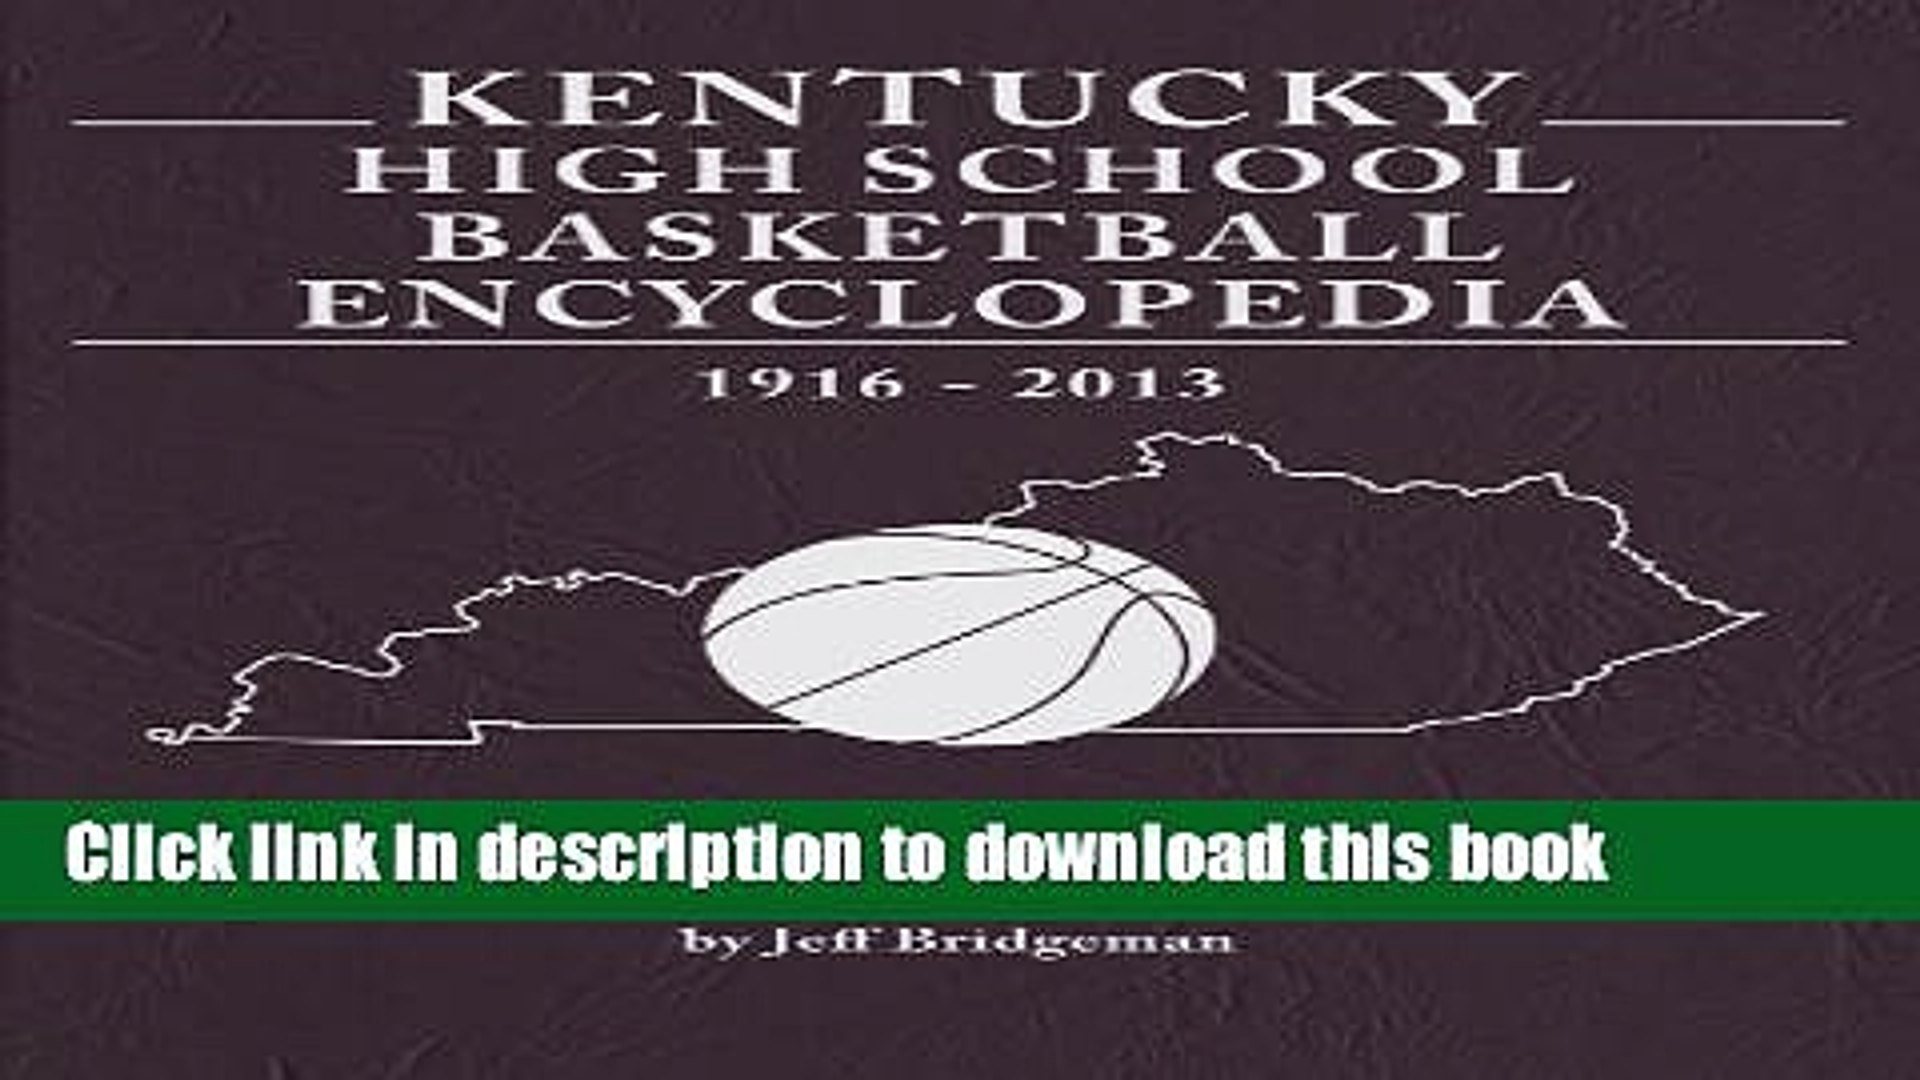 [Popular Books] Kentucky High School Basketball Encyclopedia 1916-2013 Full Online